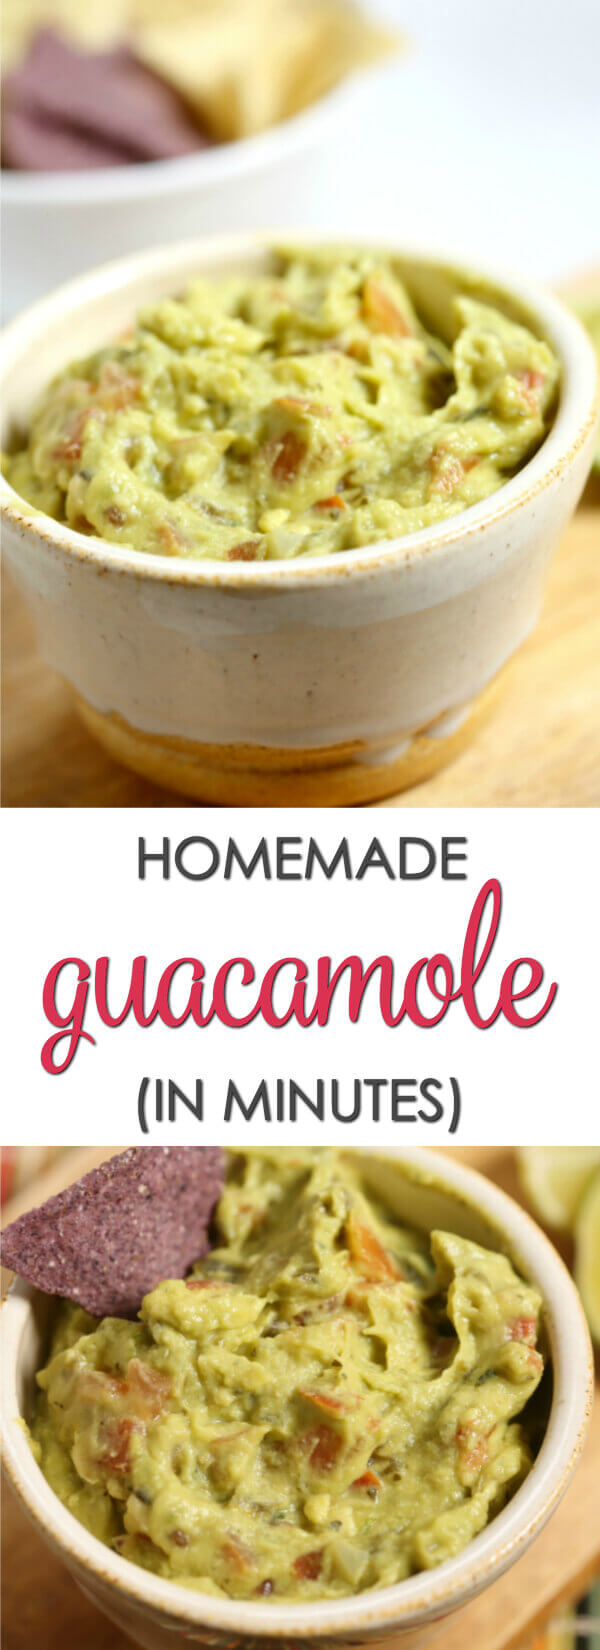 This 10 minute homemade guacamolerecipe easy is so much better than anything you can buy. It's the best guacamole recipe I've ever had.  #itisakeeper #recipe #guacamole